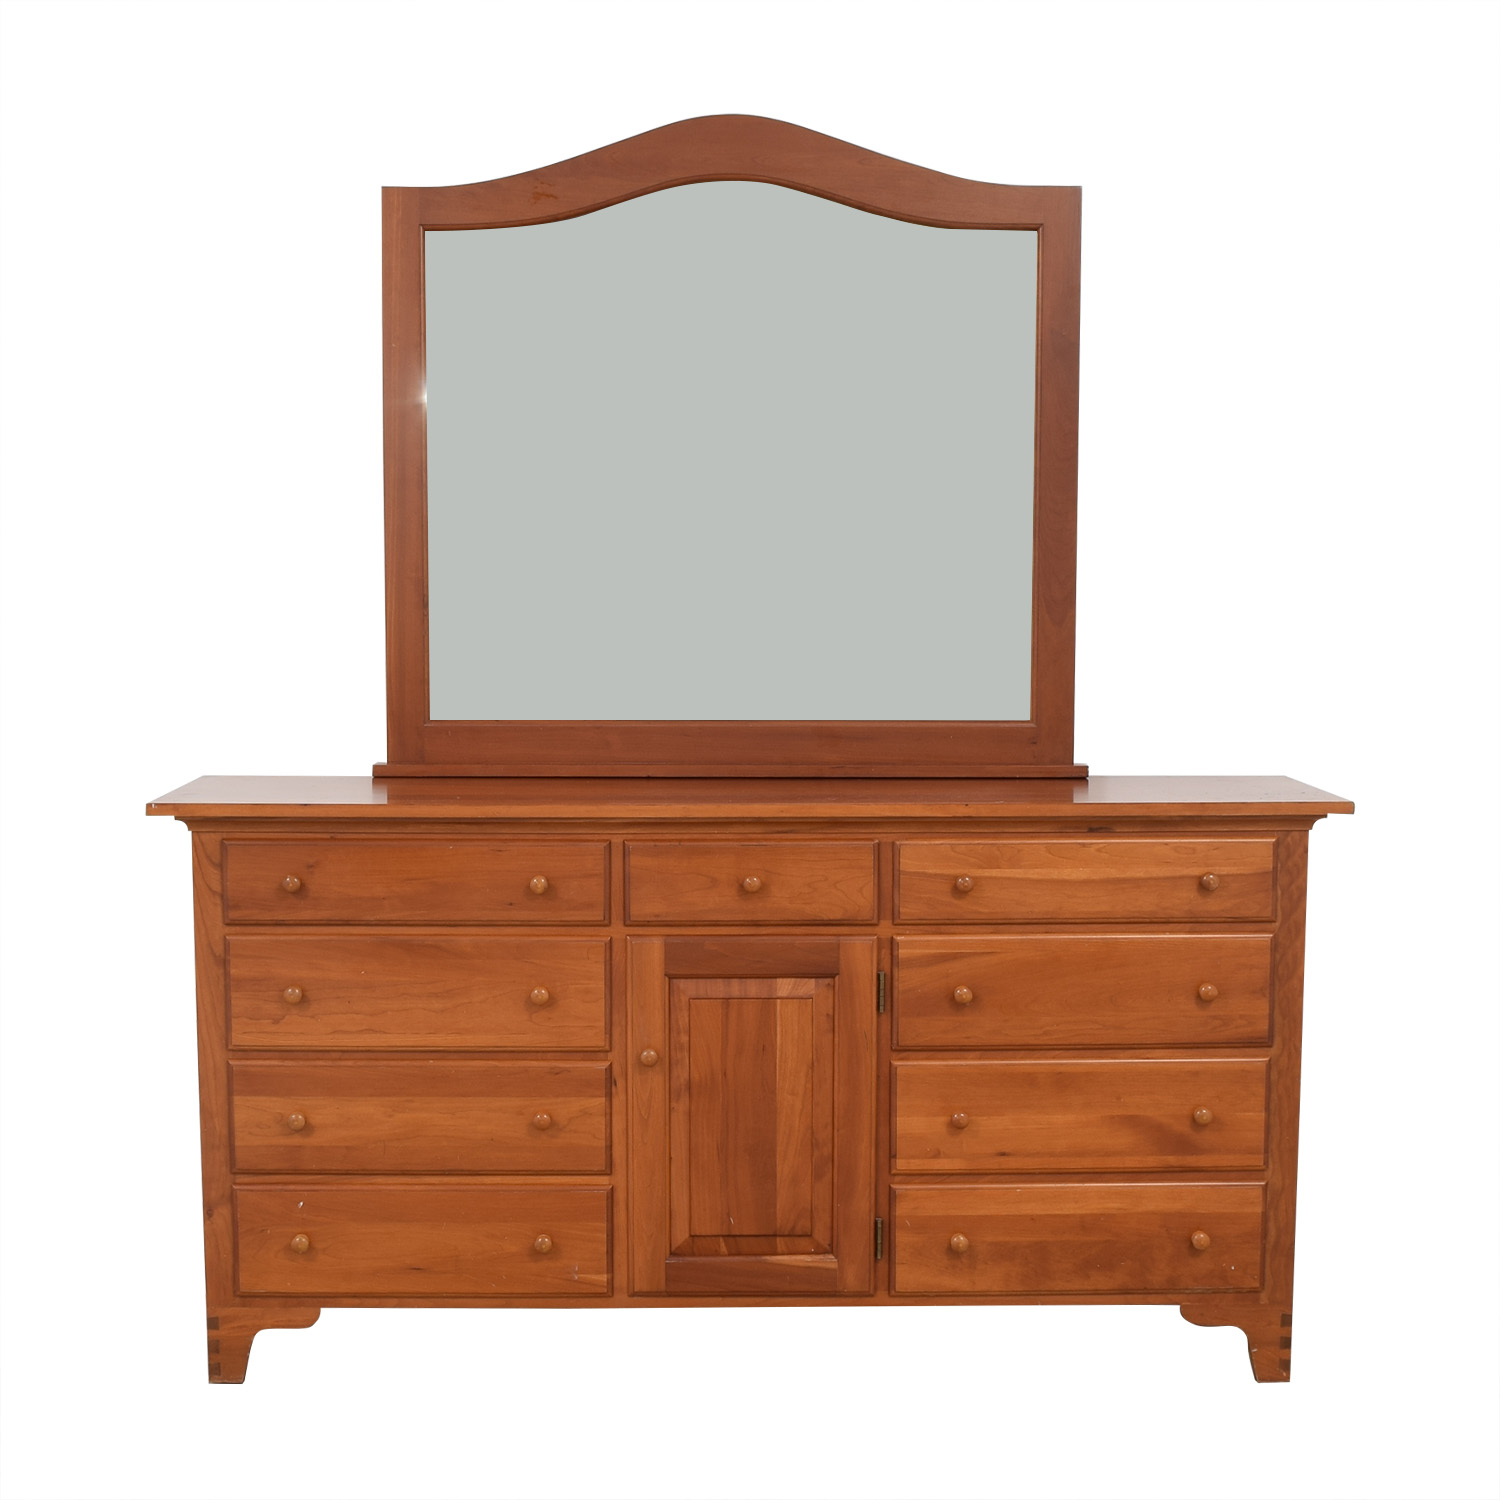 shop Ethan Allen Dresser with Mirror Ethan Allen Storage